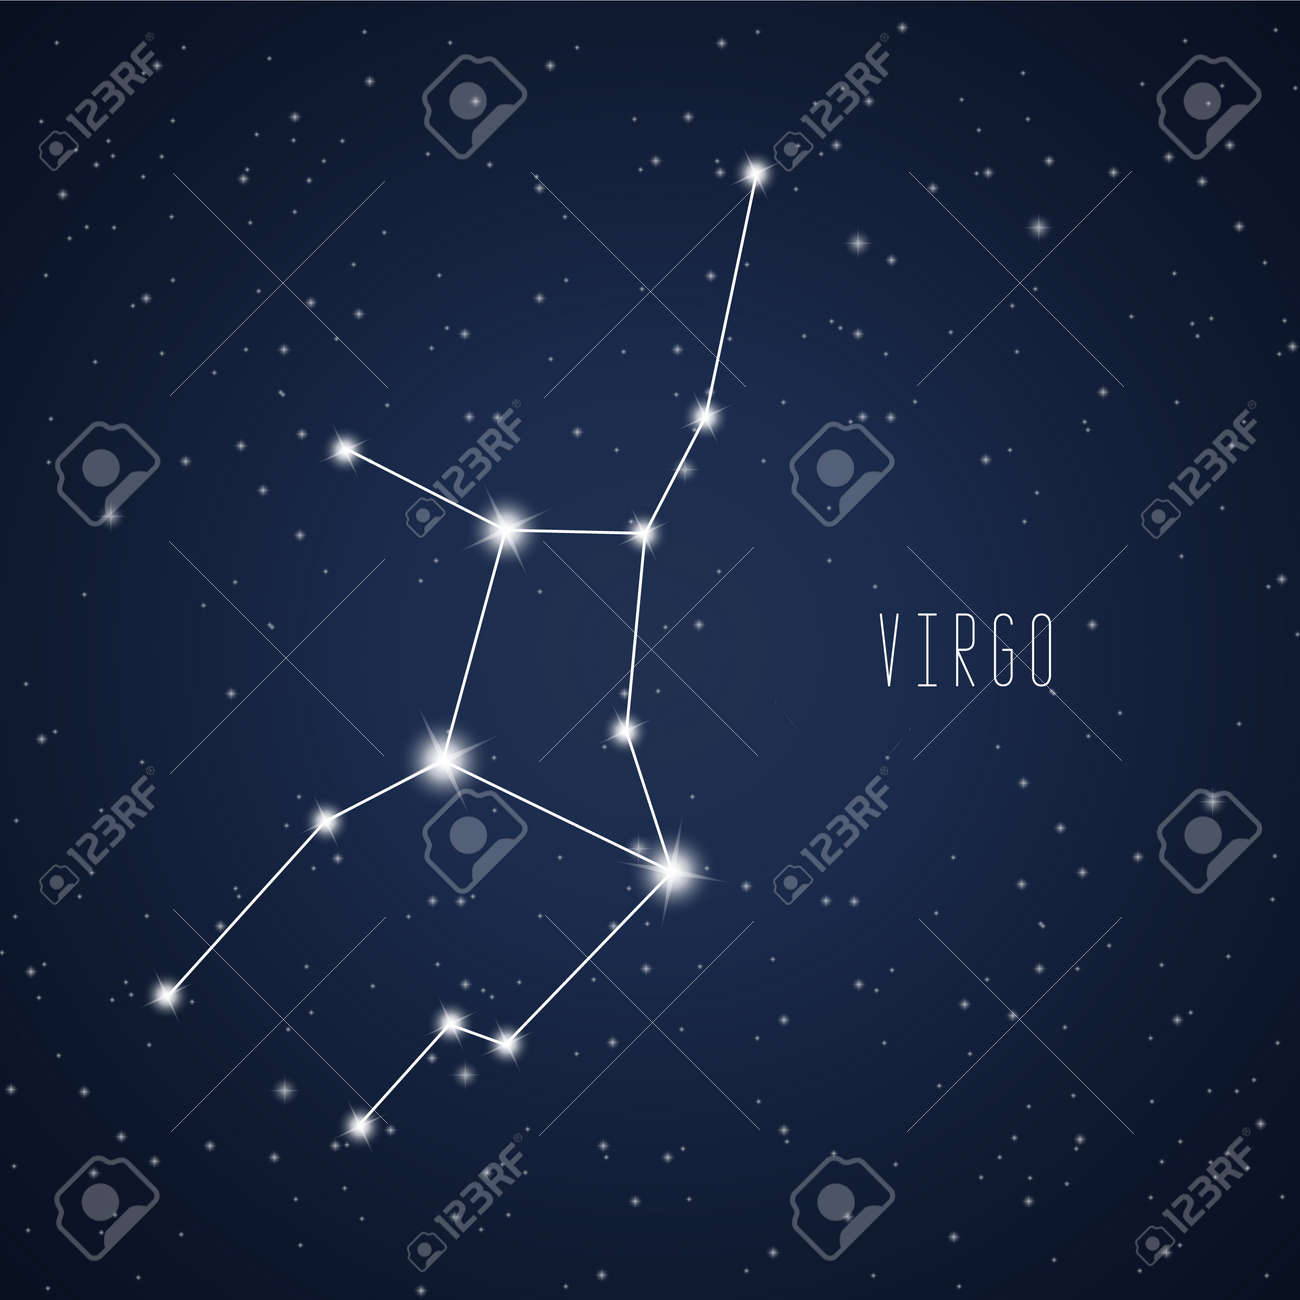 Vector illustration of Virgo constellation on the background of starry sky - 70670278